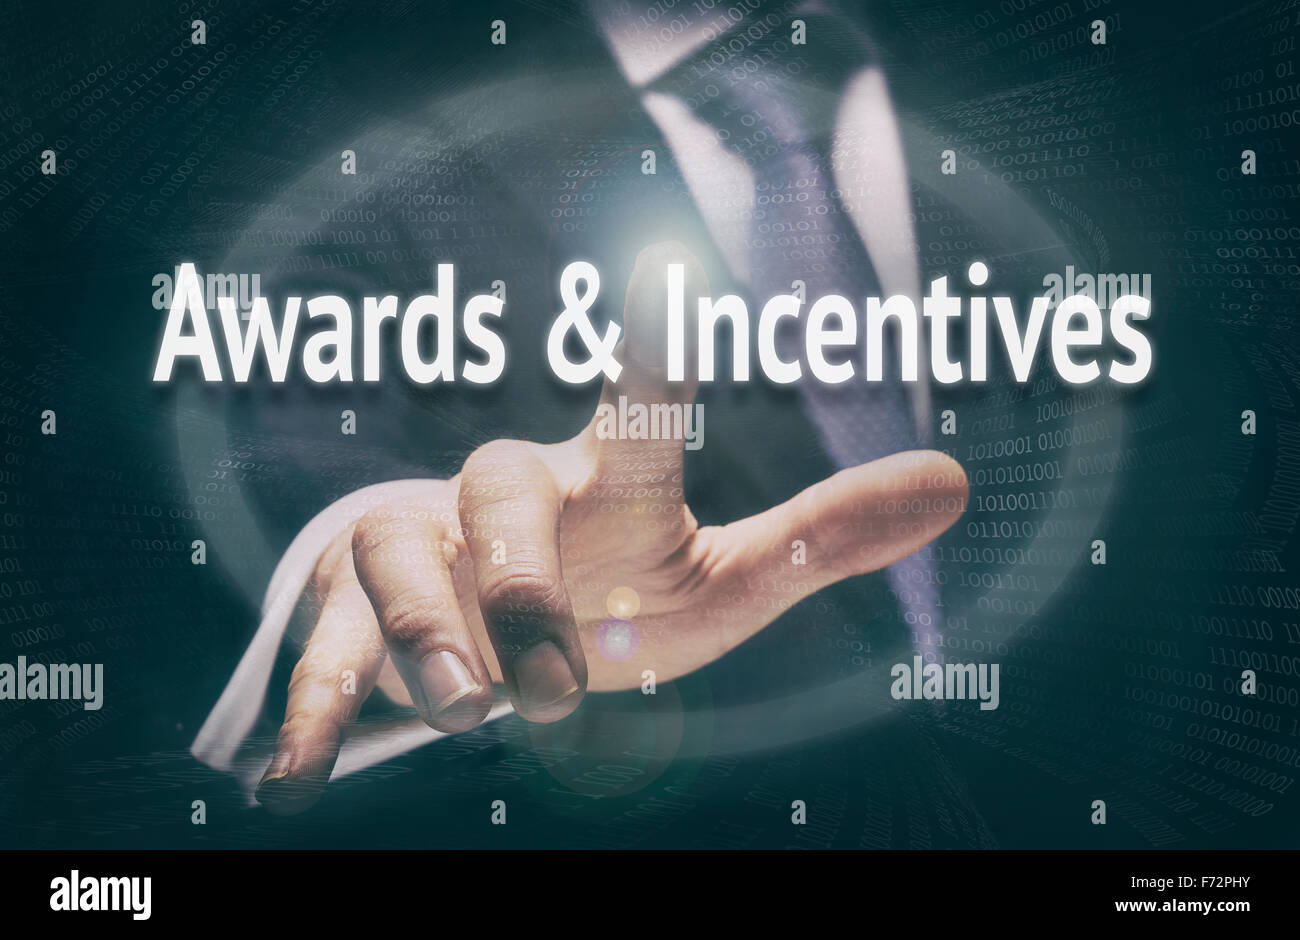 Awards & Incentives, Induction Training headlines concept. - Stock Image